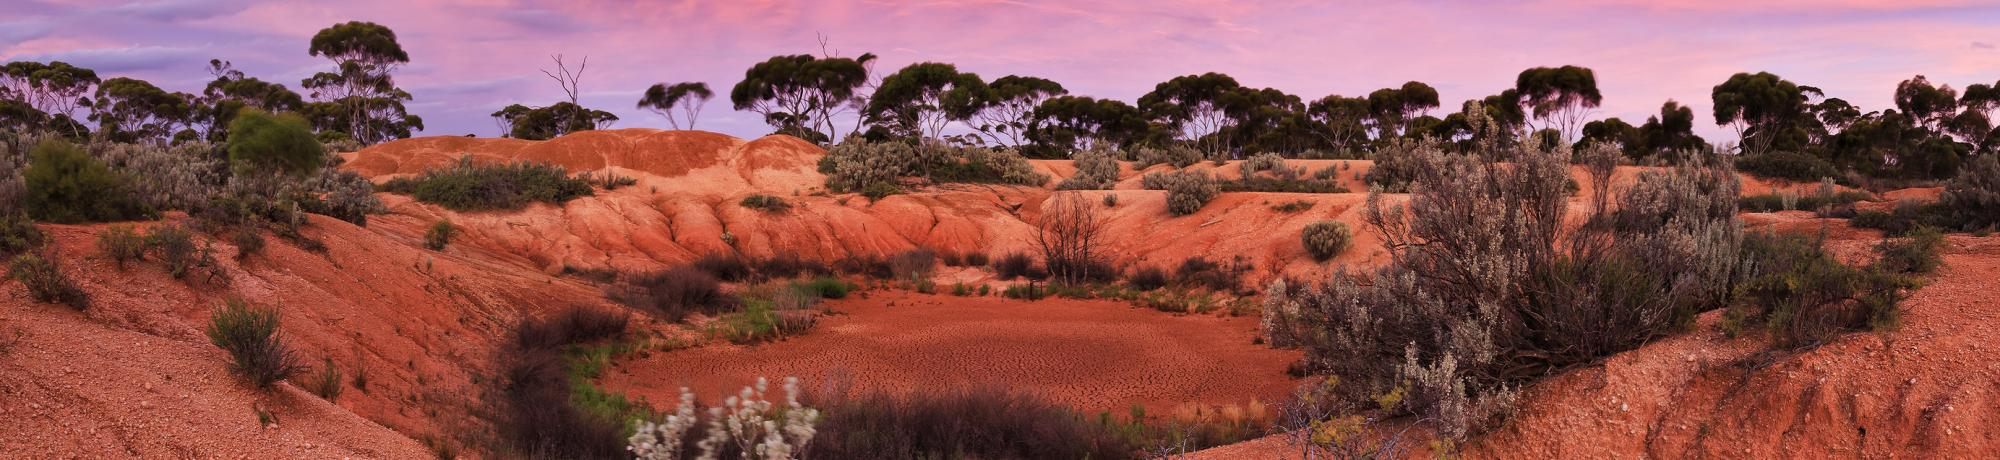 UC Davis Study Abroad, Summer Abroad Australia, Urban to Outback Program, Header Image, Instructor Page